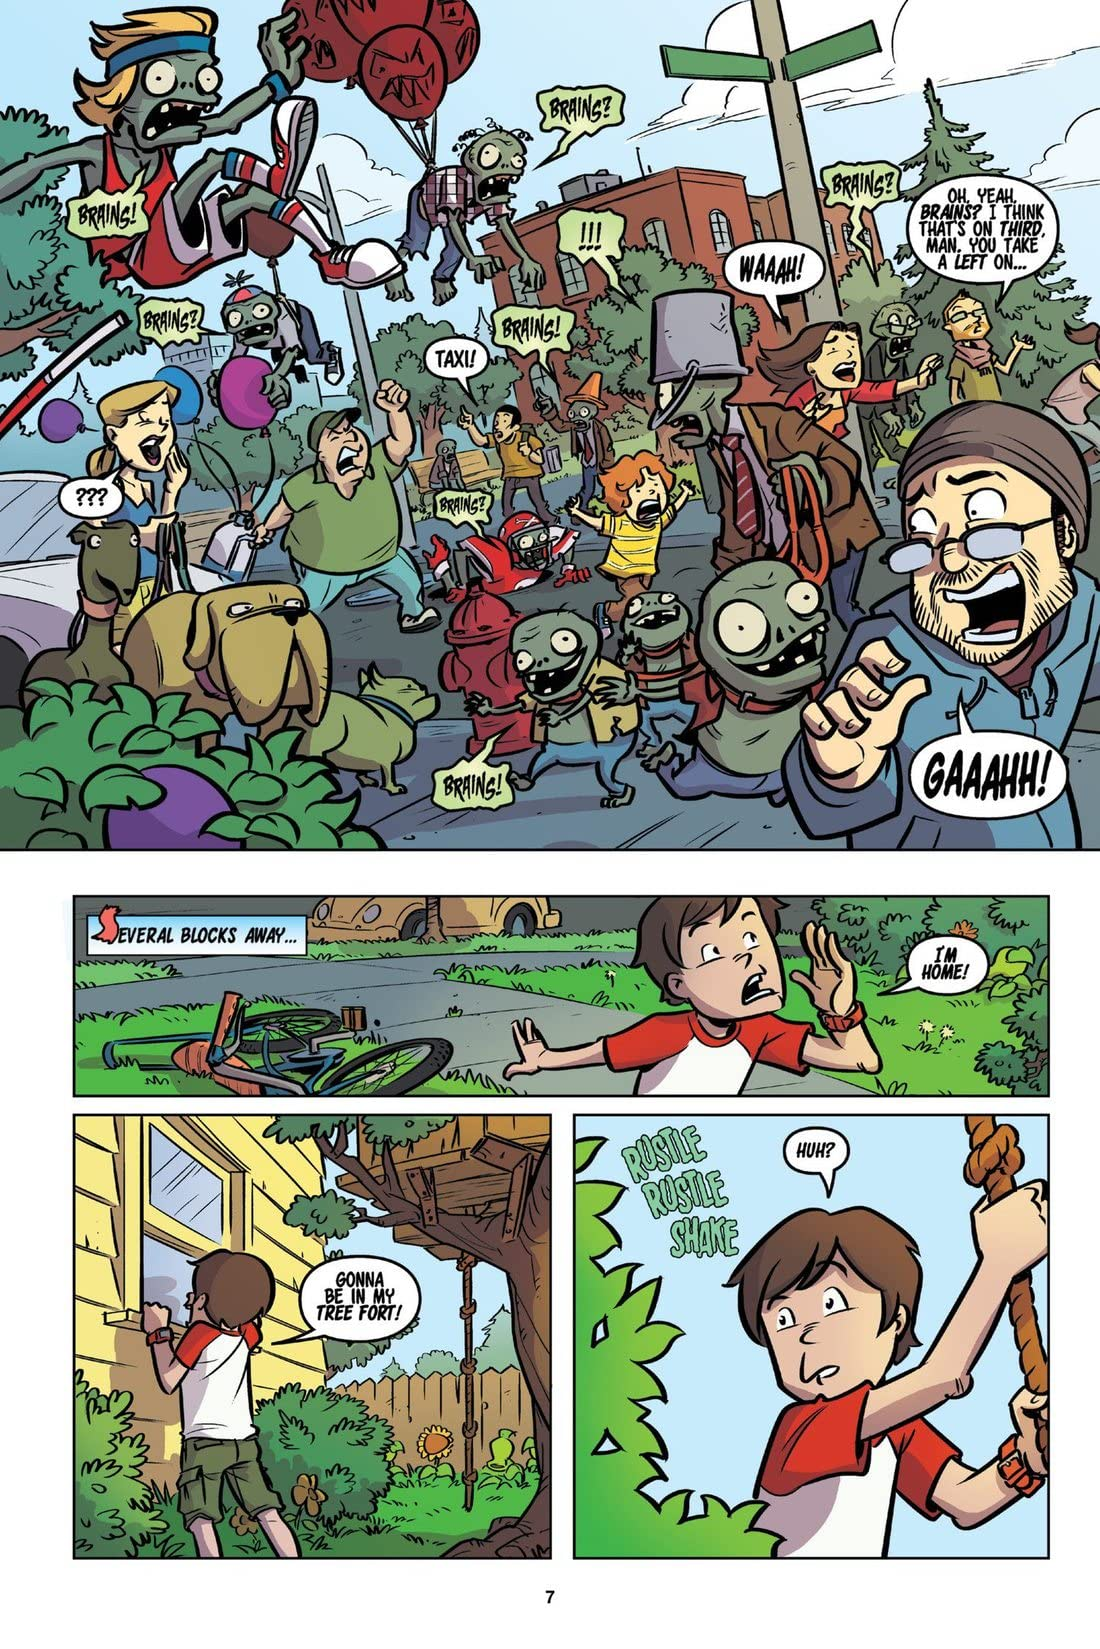 Plants vs. Zombies Vol. 1: Lawnmageddon